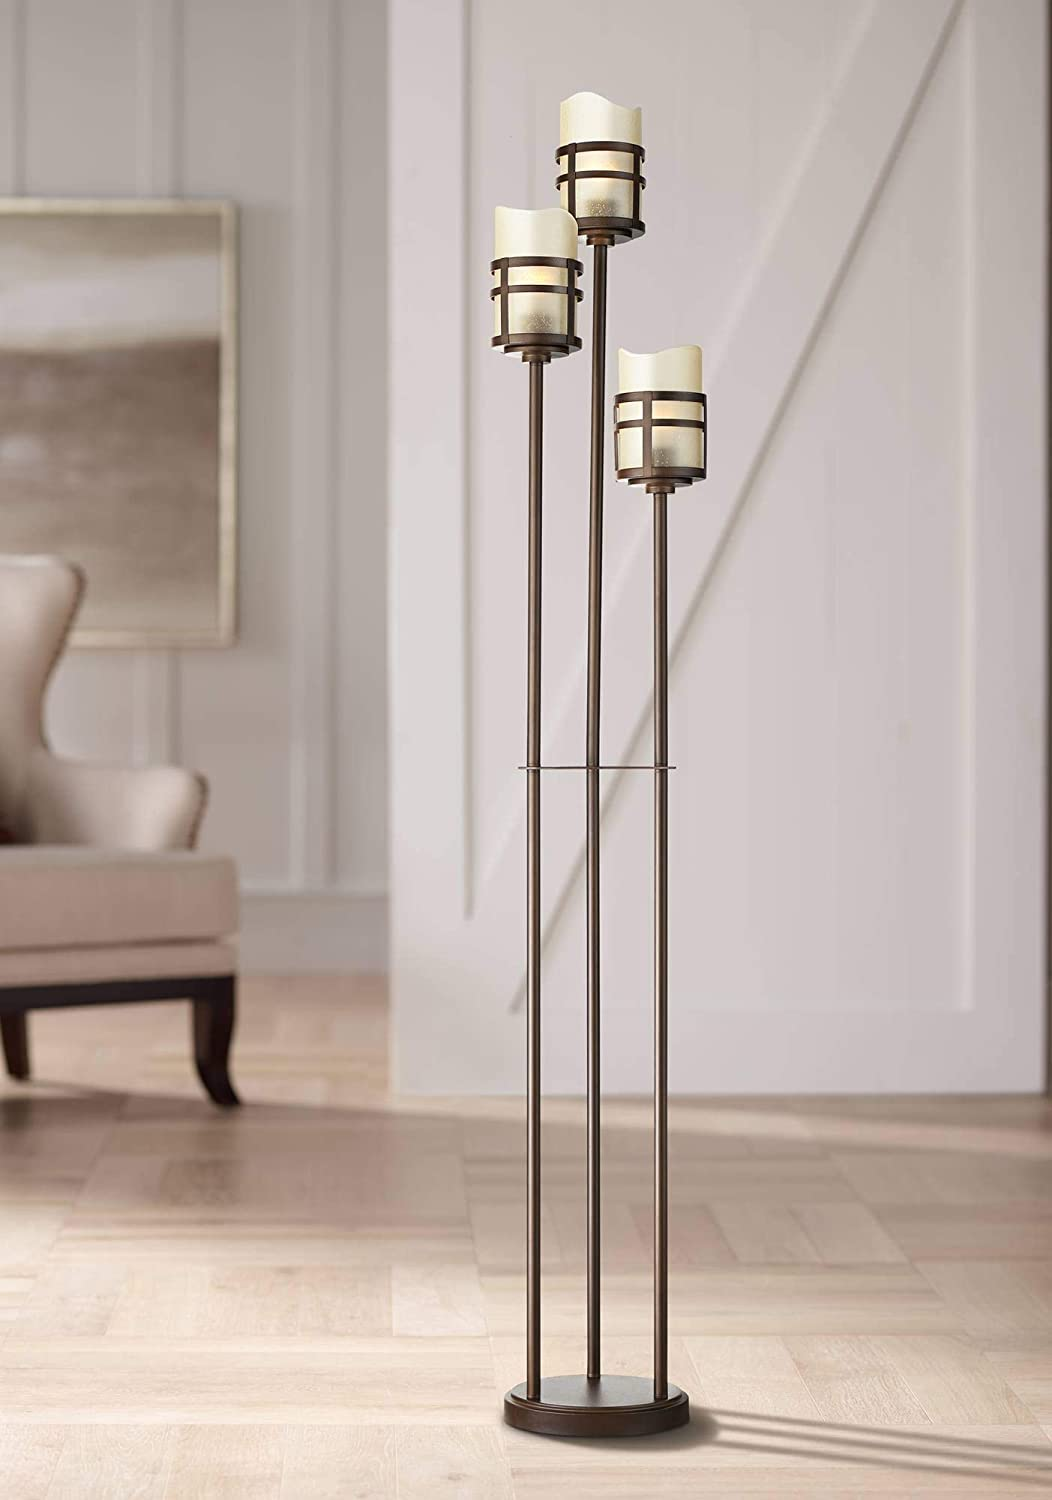 Carob Modern Farmhouse Rustic Torchiere Floor Lamp Tree 3-Light Oil Rubbed Bronze Amber Scavo Glass Shades Decor for Living Room Reading House Bedroom Home Office Uplight - Franklin Iron Works